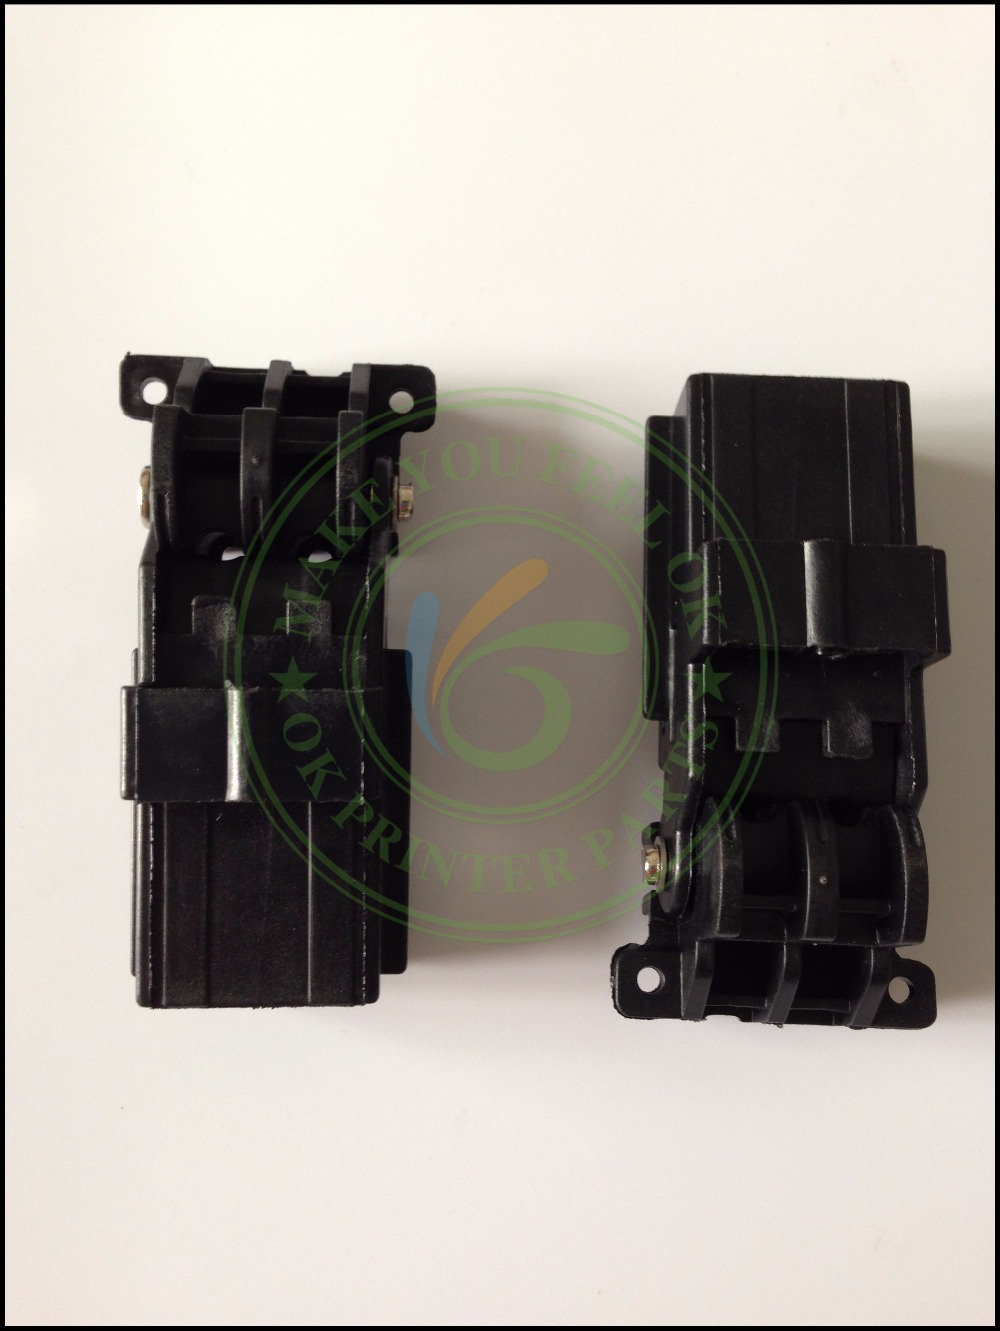 COMPATIBLE Q8052-40001 Cover-M Hinge ADF Hinge Assembly for HP 5780 5788 5740 5750 6210 6208 6310 6318 6480 6488 6210 6310 5780(China (Mainland))